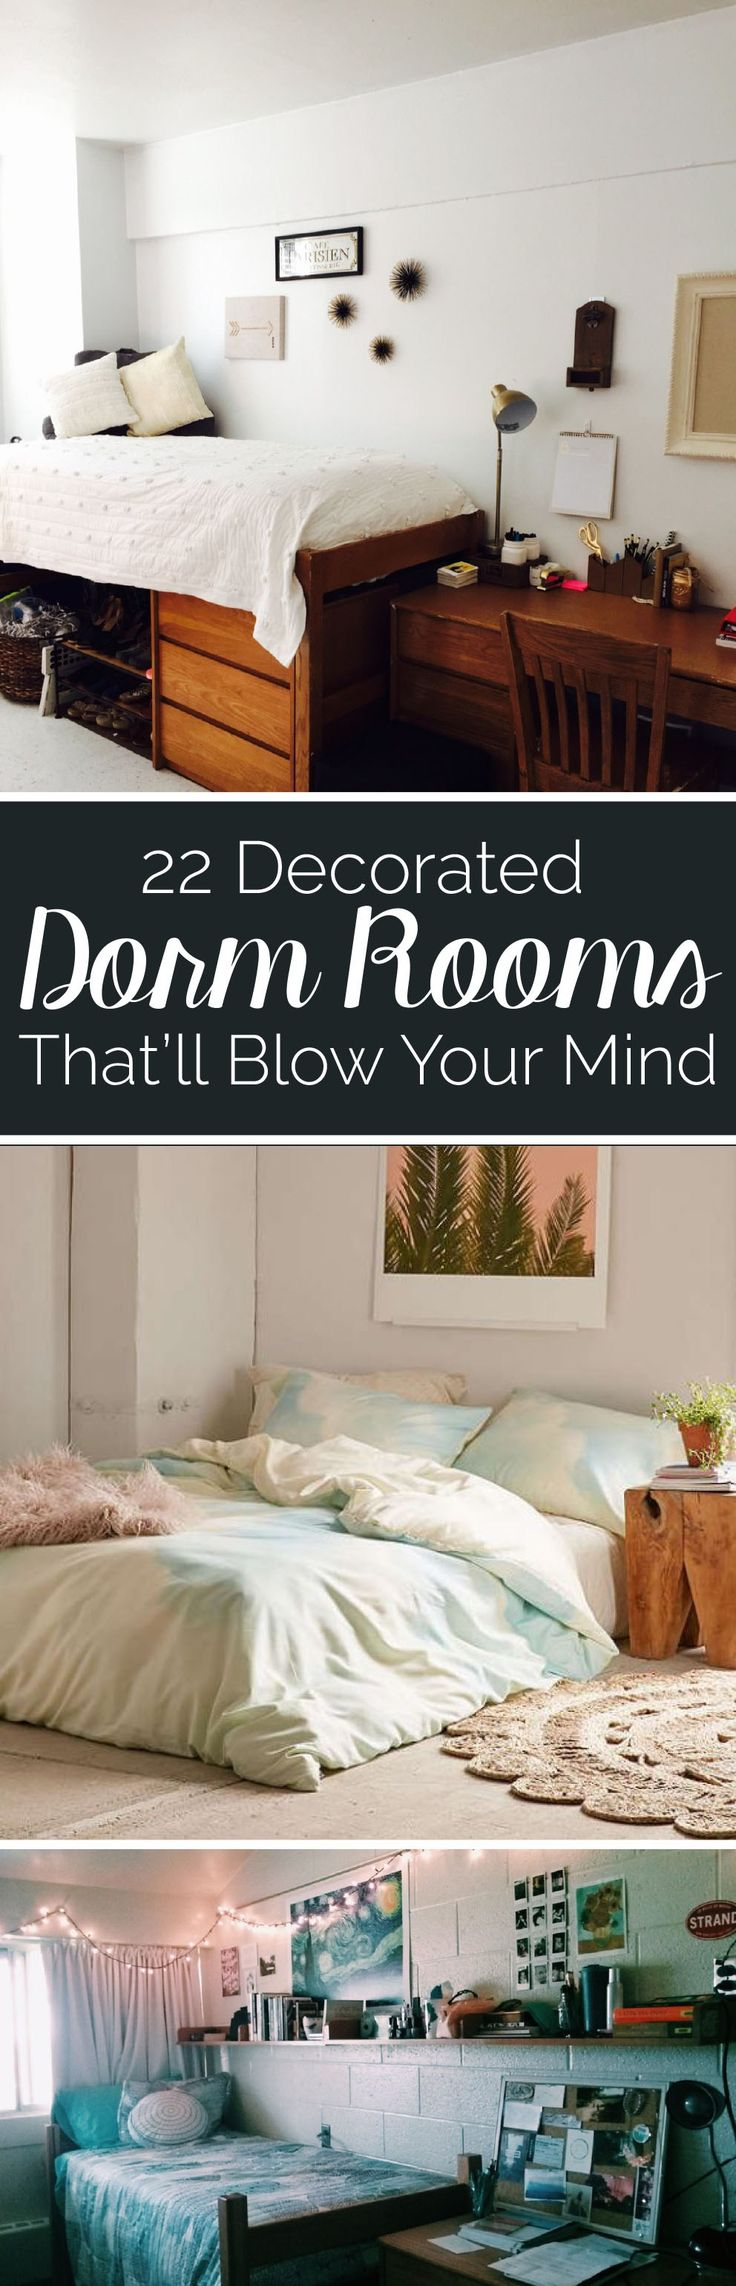 Decorated Dorm Rooms Thatll Blow Your Mind